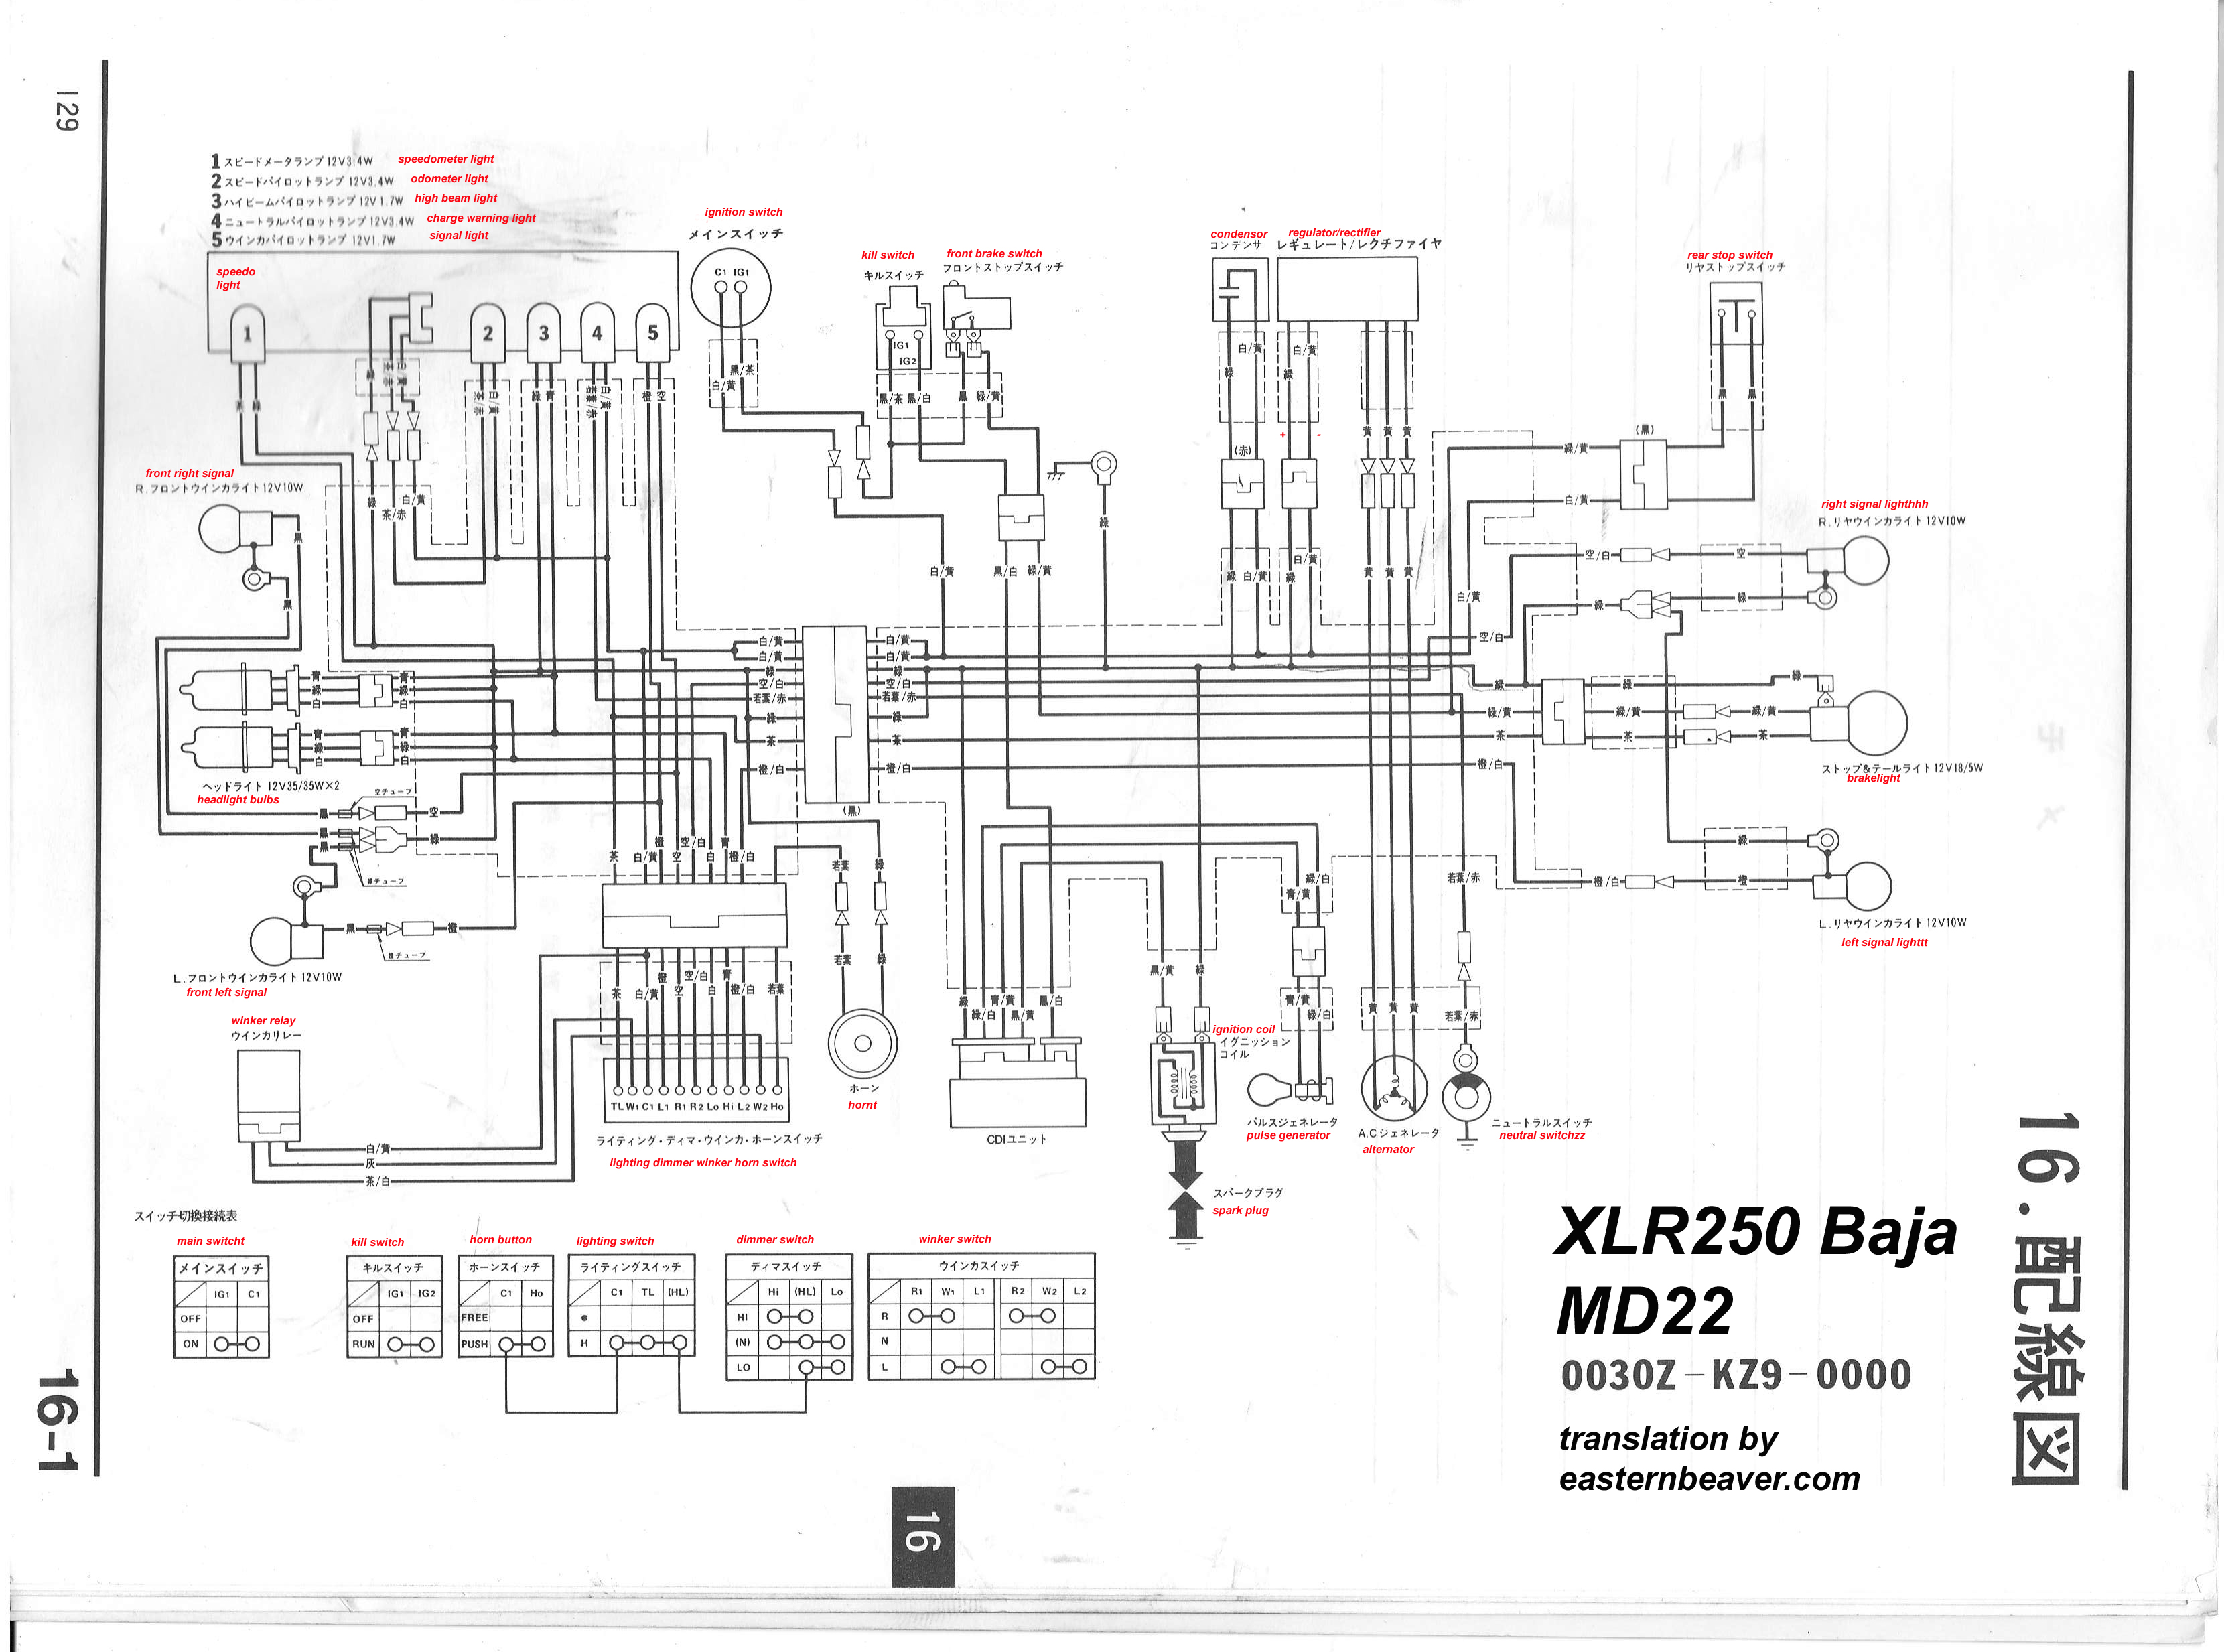 Xlr250 Baja Xlr To 1 4 Wiring Diagram Md22 Click Here